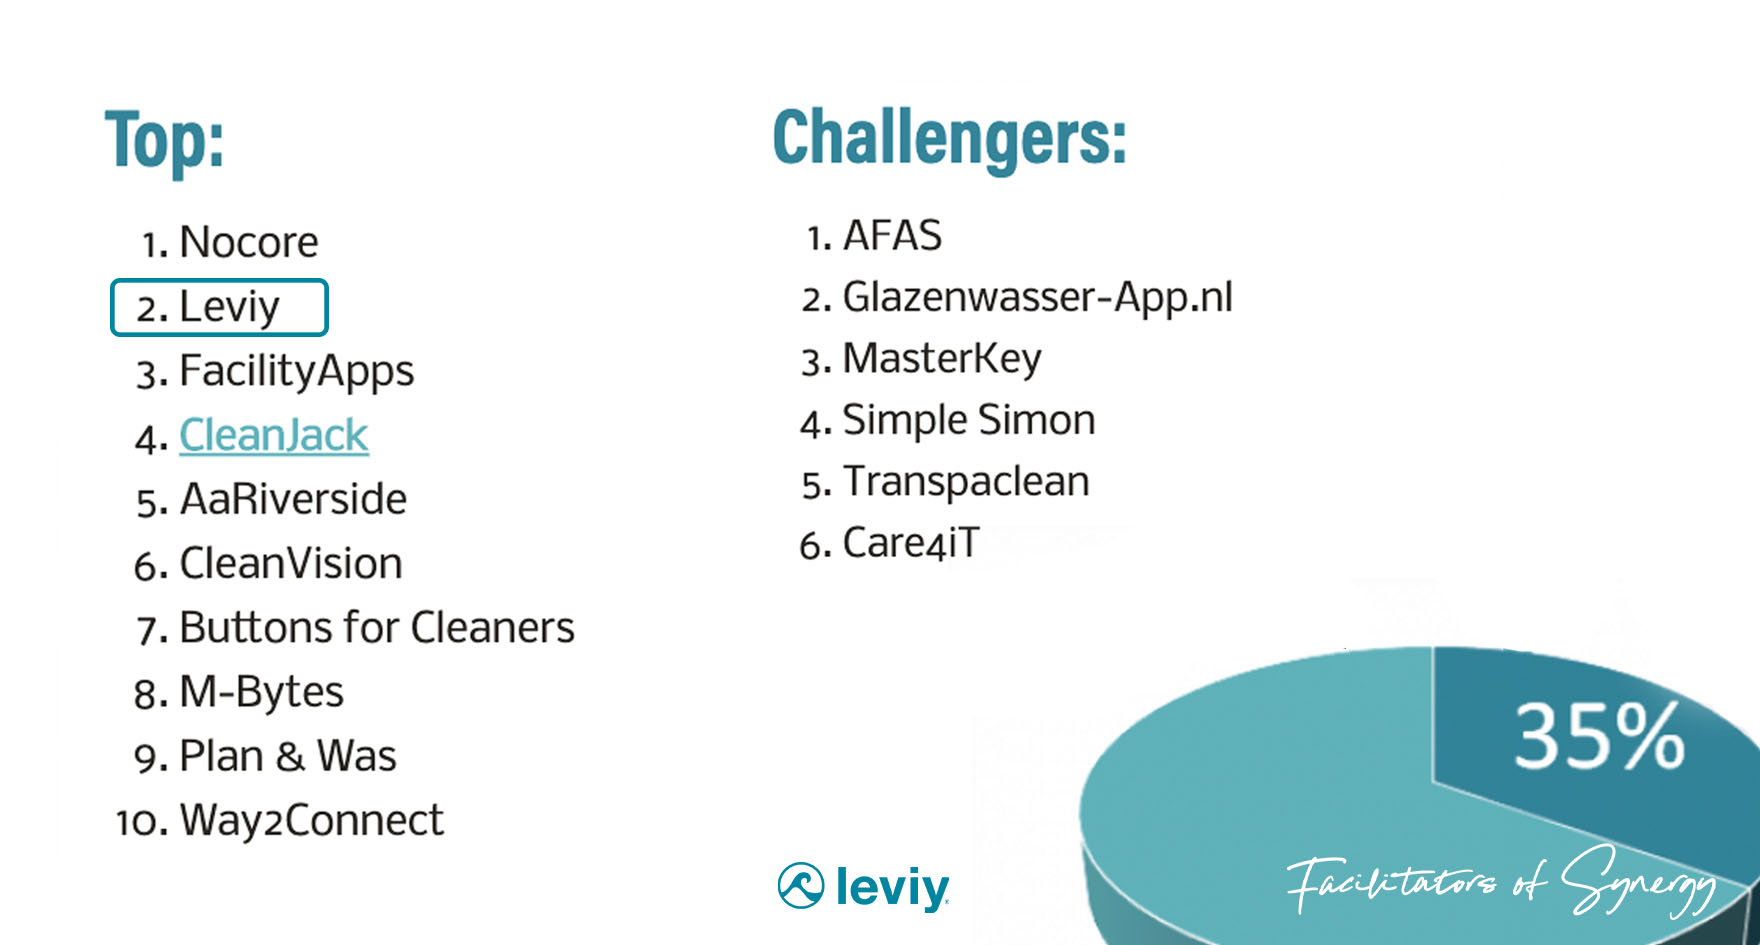 Leviy-Partner-of-choice-top